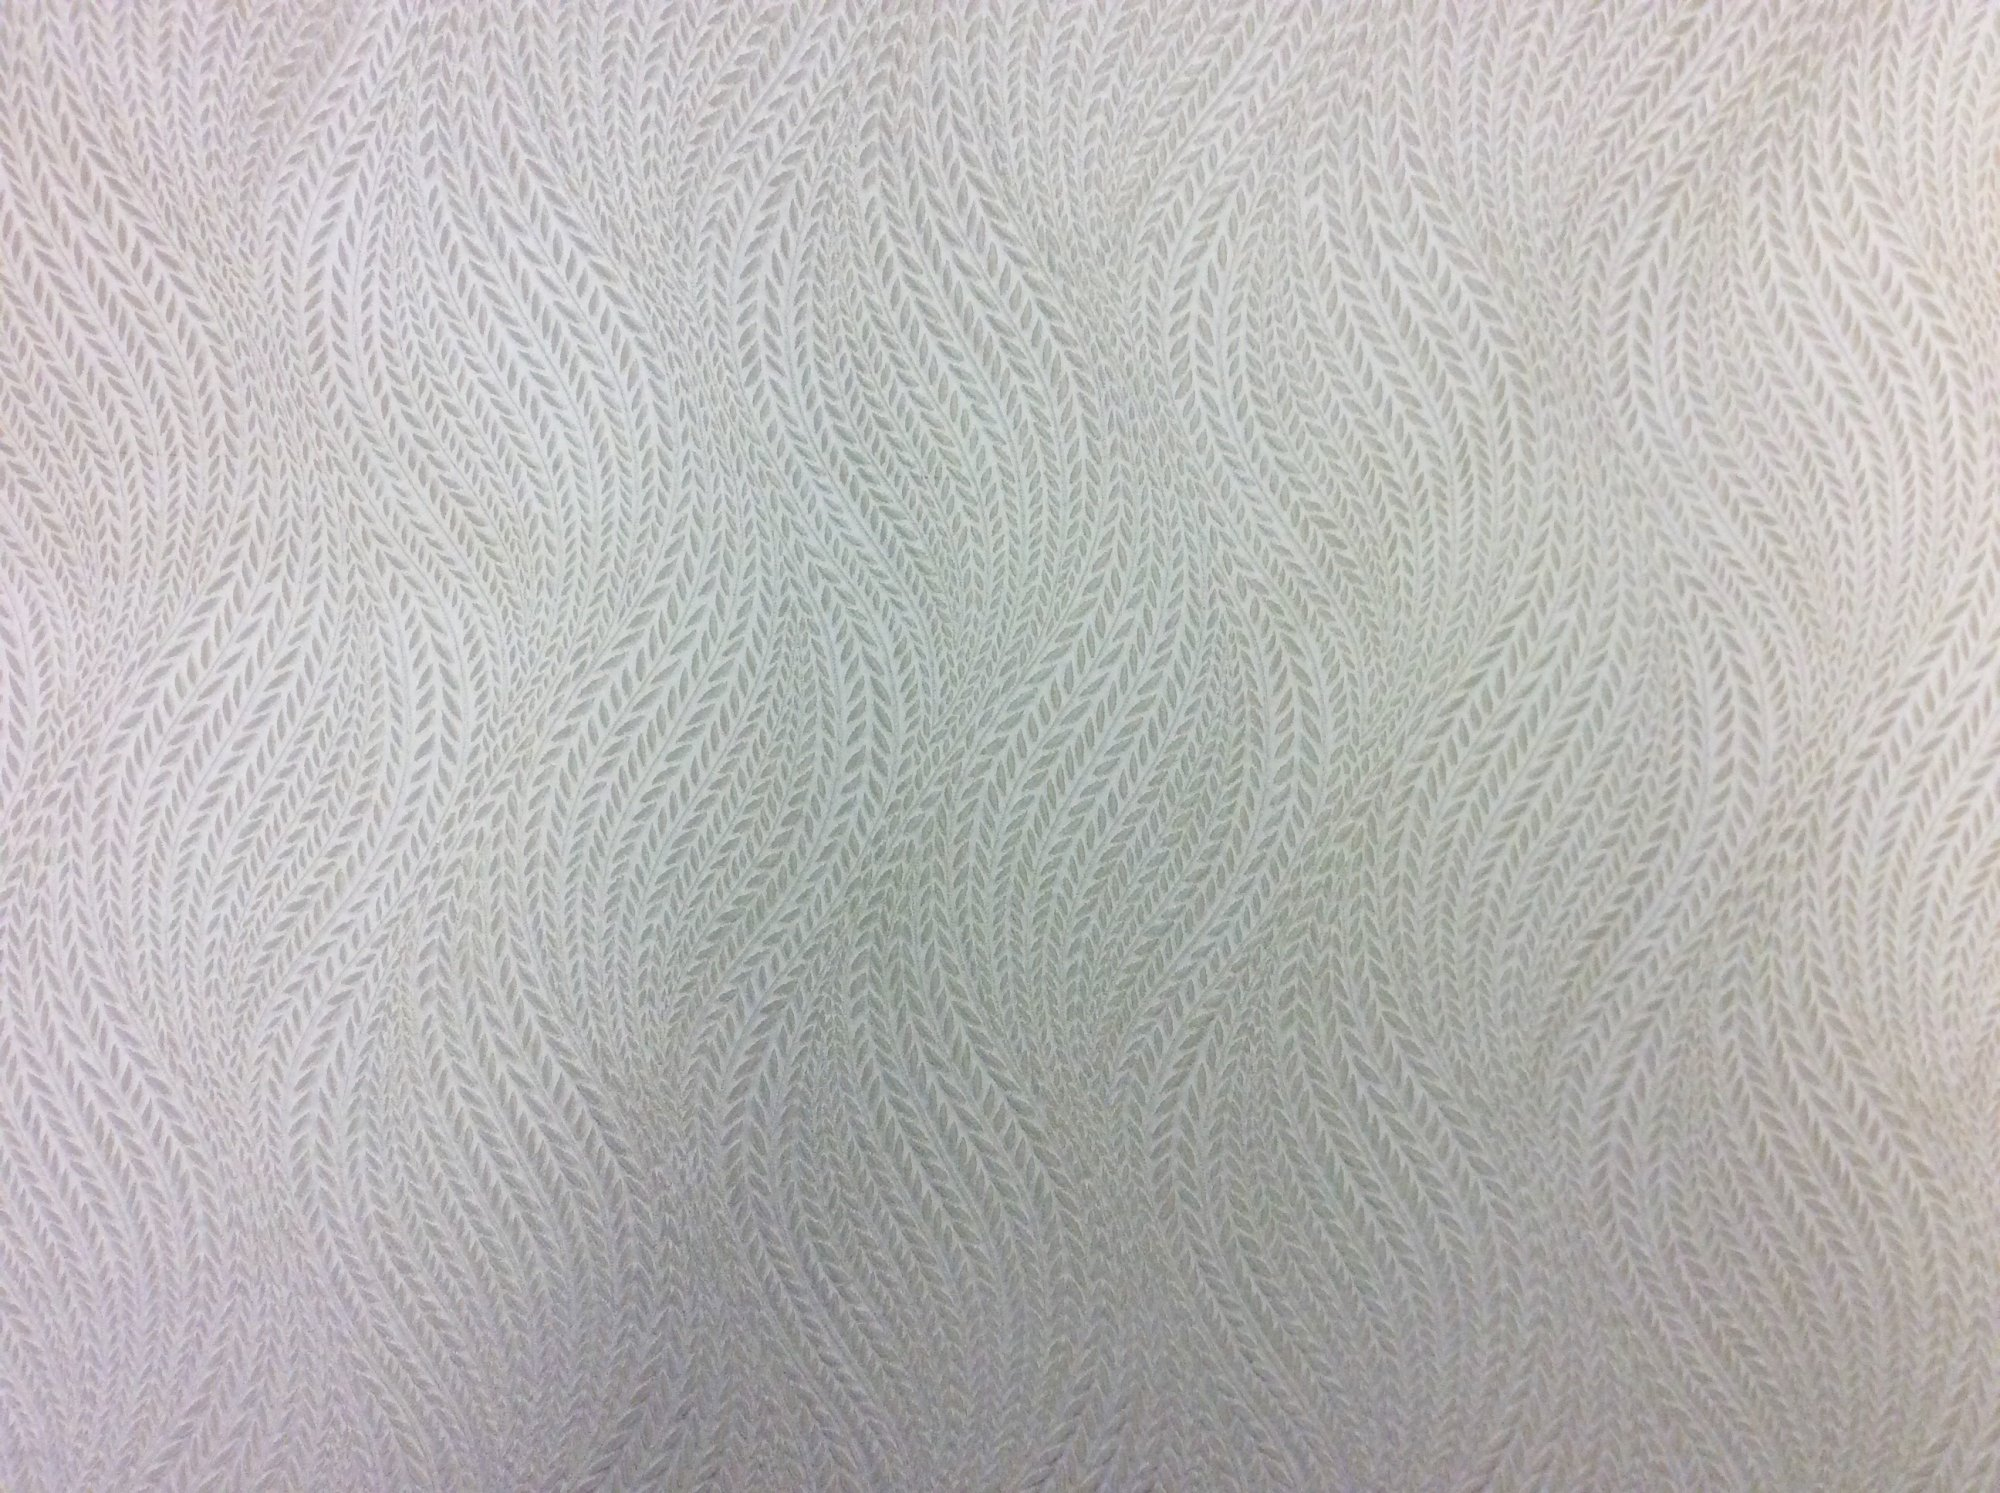 CAR1803. Textured Home Decor Fabric. Ivory.